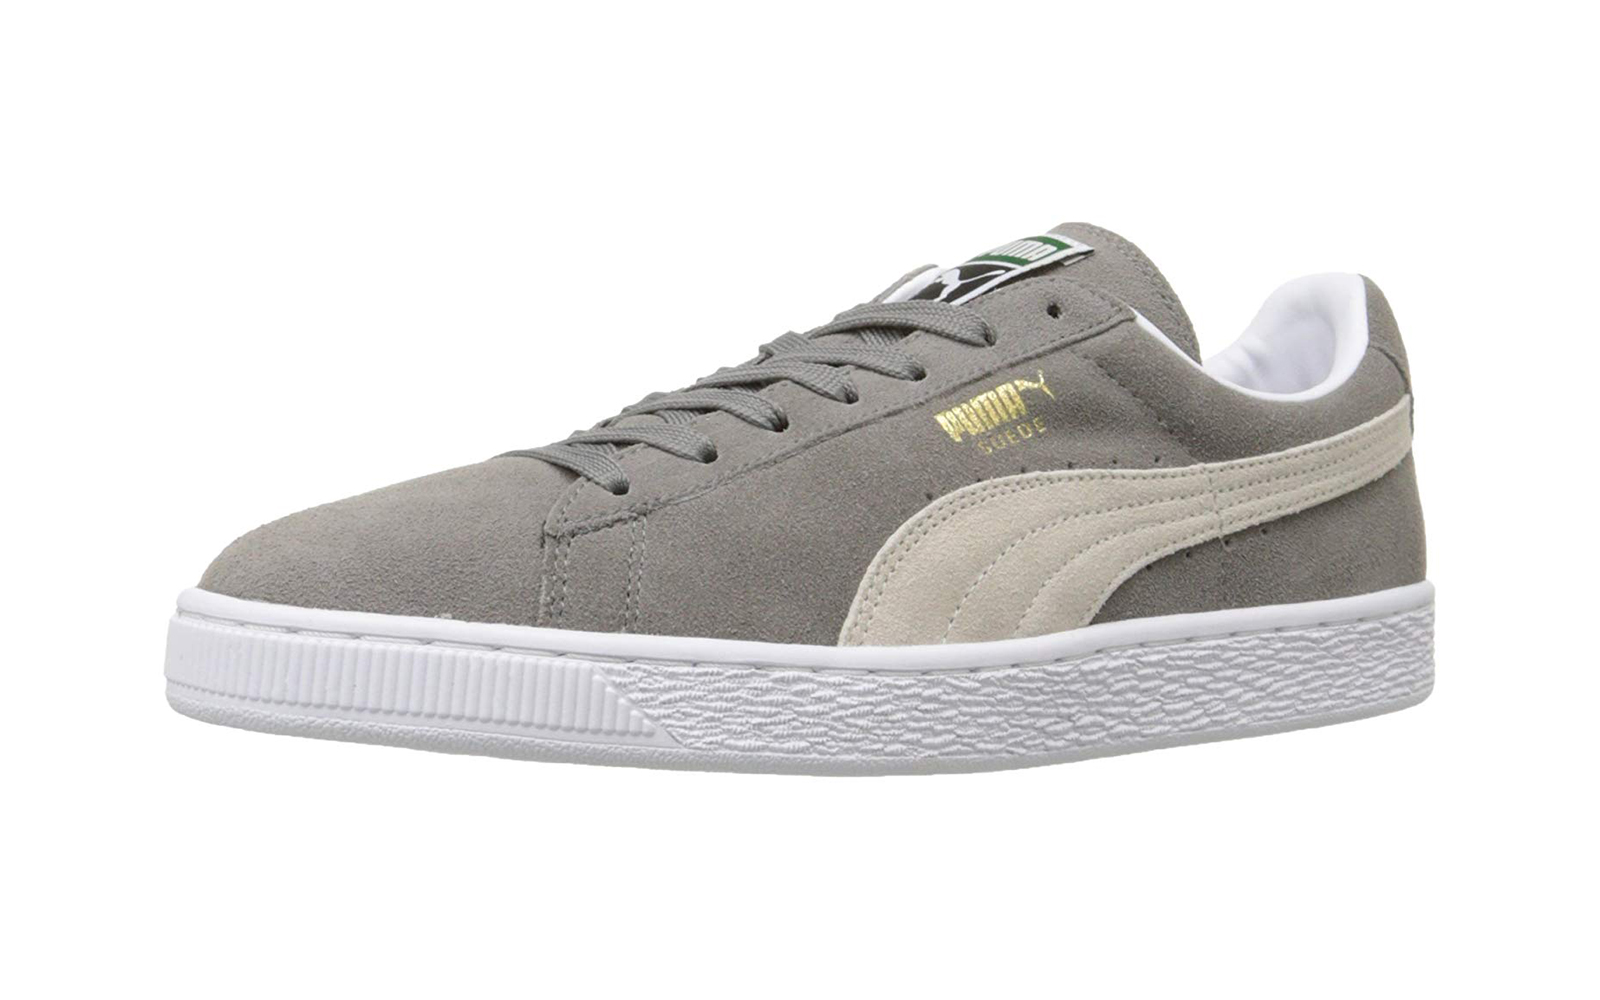 quality design 89138 3d222 Puma Adult Suede Classic Sneaker. Courtesy of Amazon